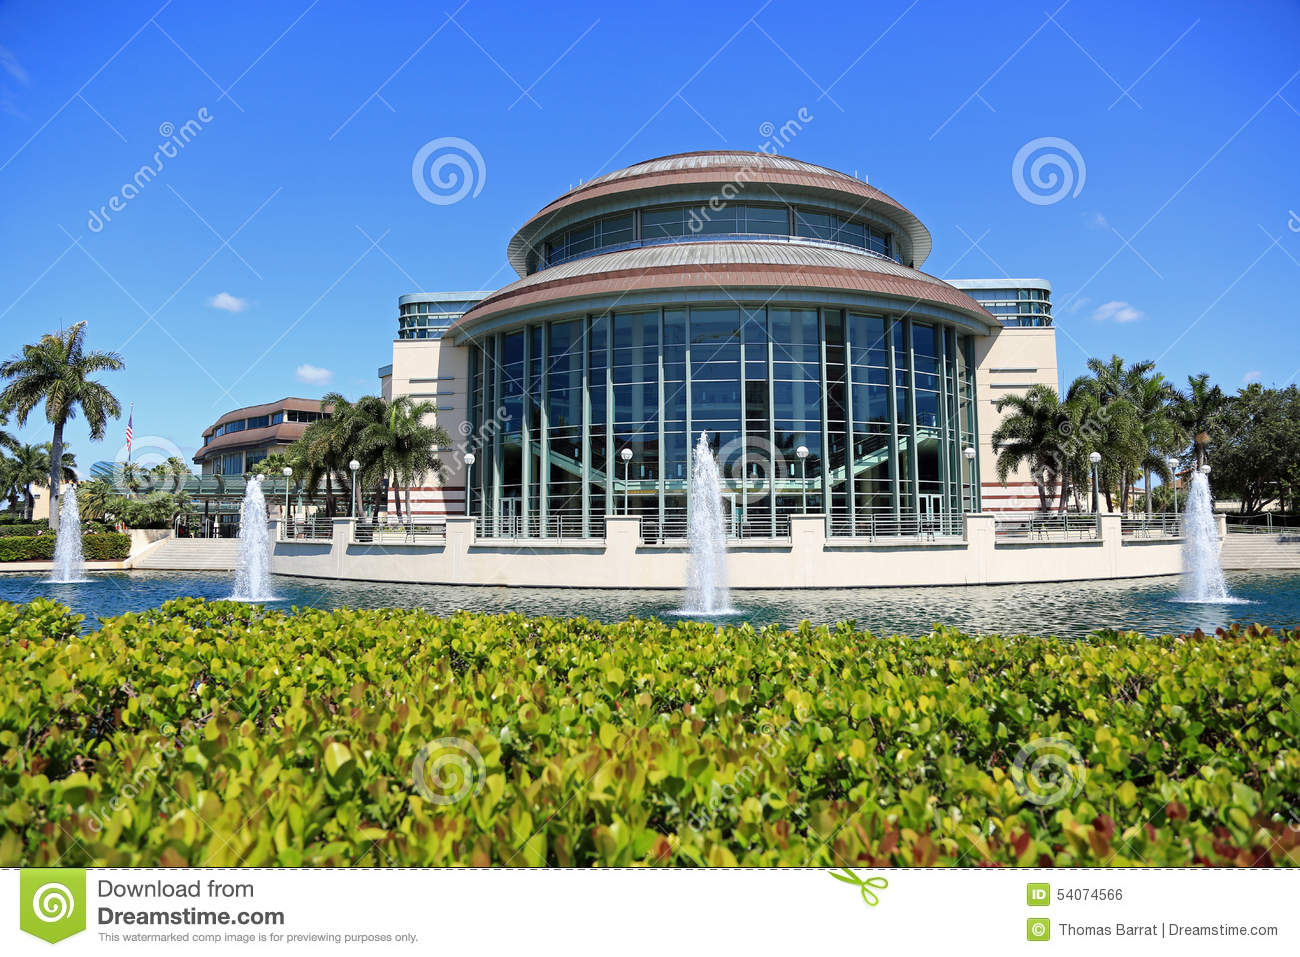 The Kravis Center In West Palm Beach Stock Photo - Image of palm ...